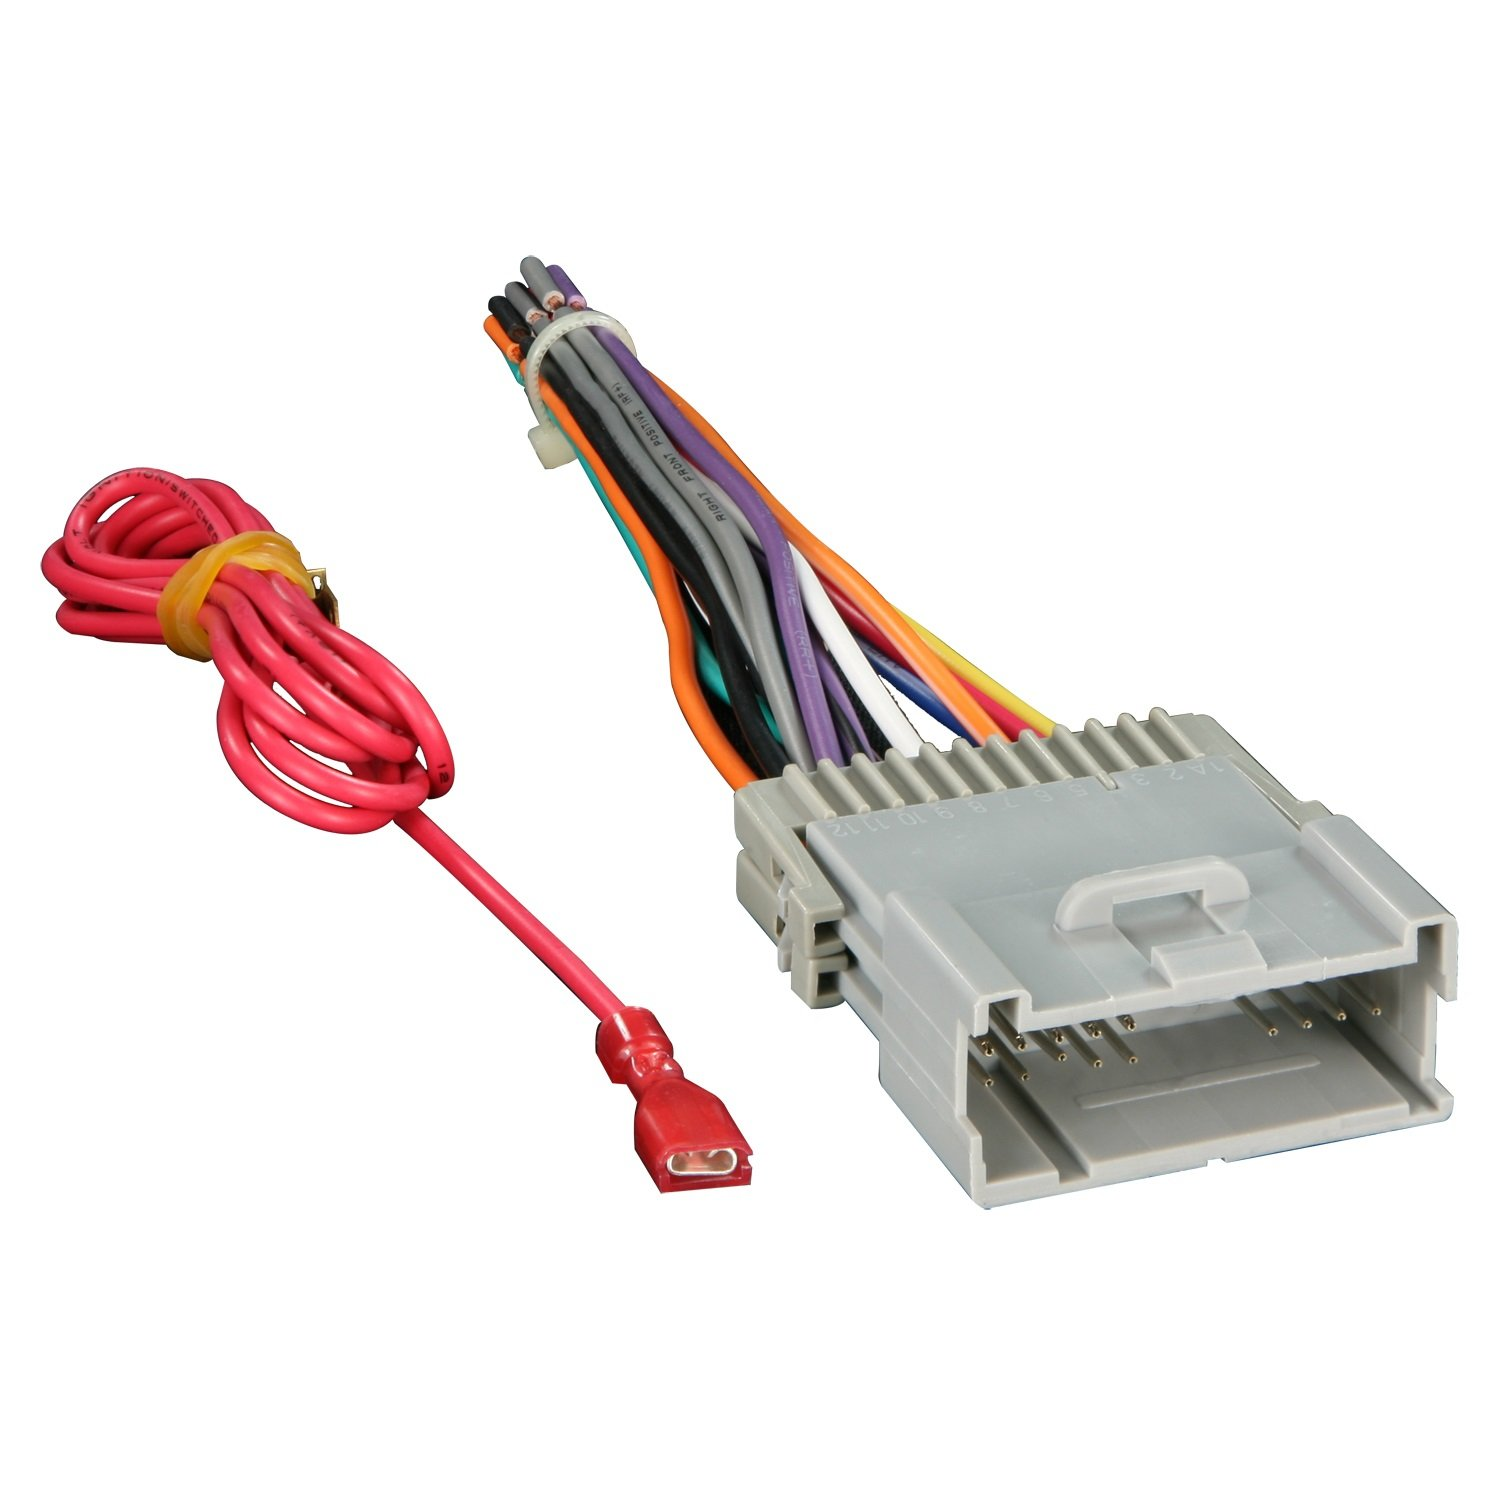 61eewxp9orL._SL1500_ amazon com metra 70 2003 radio wiring harness for gm 98 08 harness wire for car stereo at n-0.co